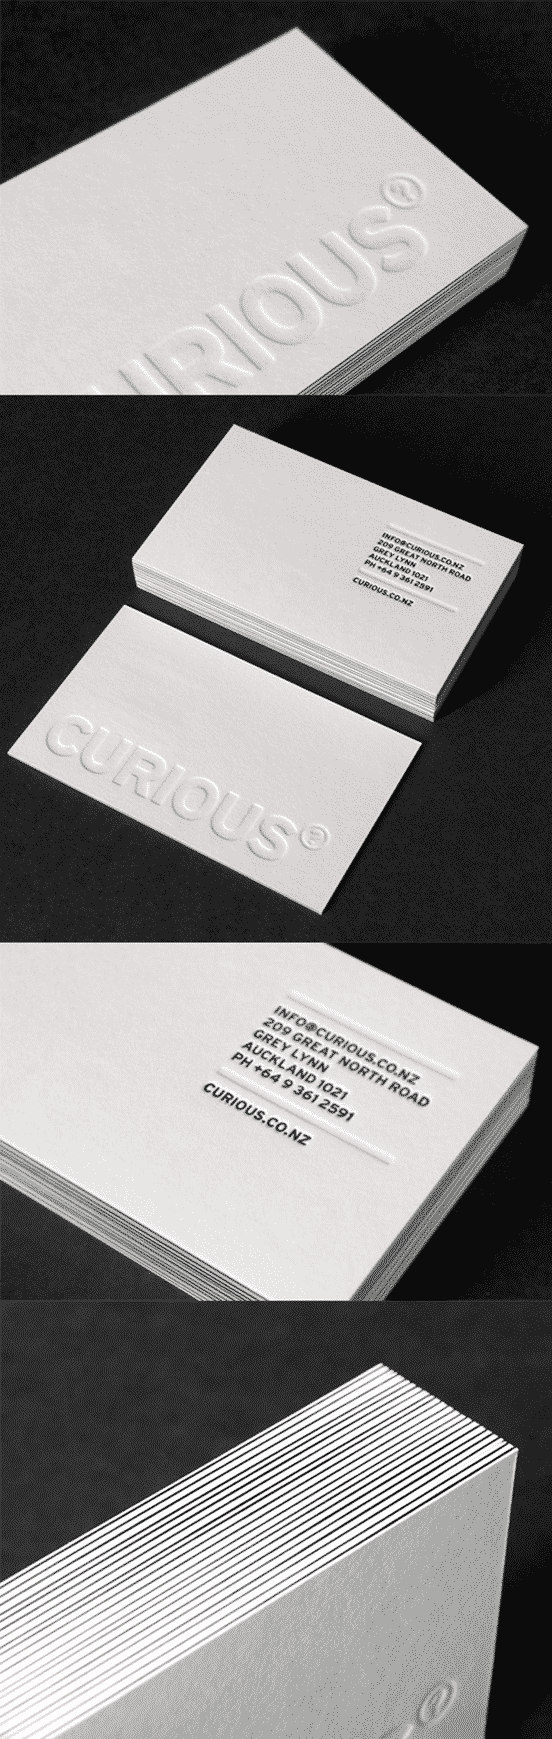 Deeply Embossed Business Card